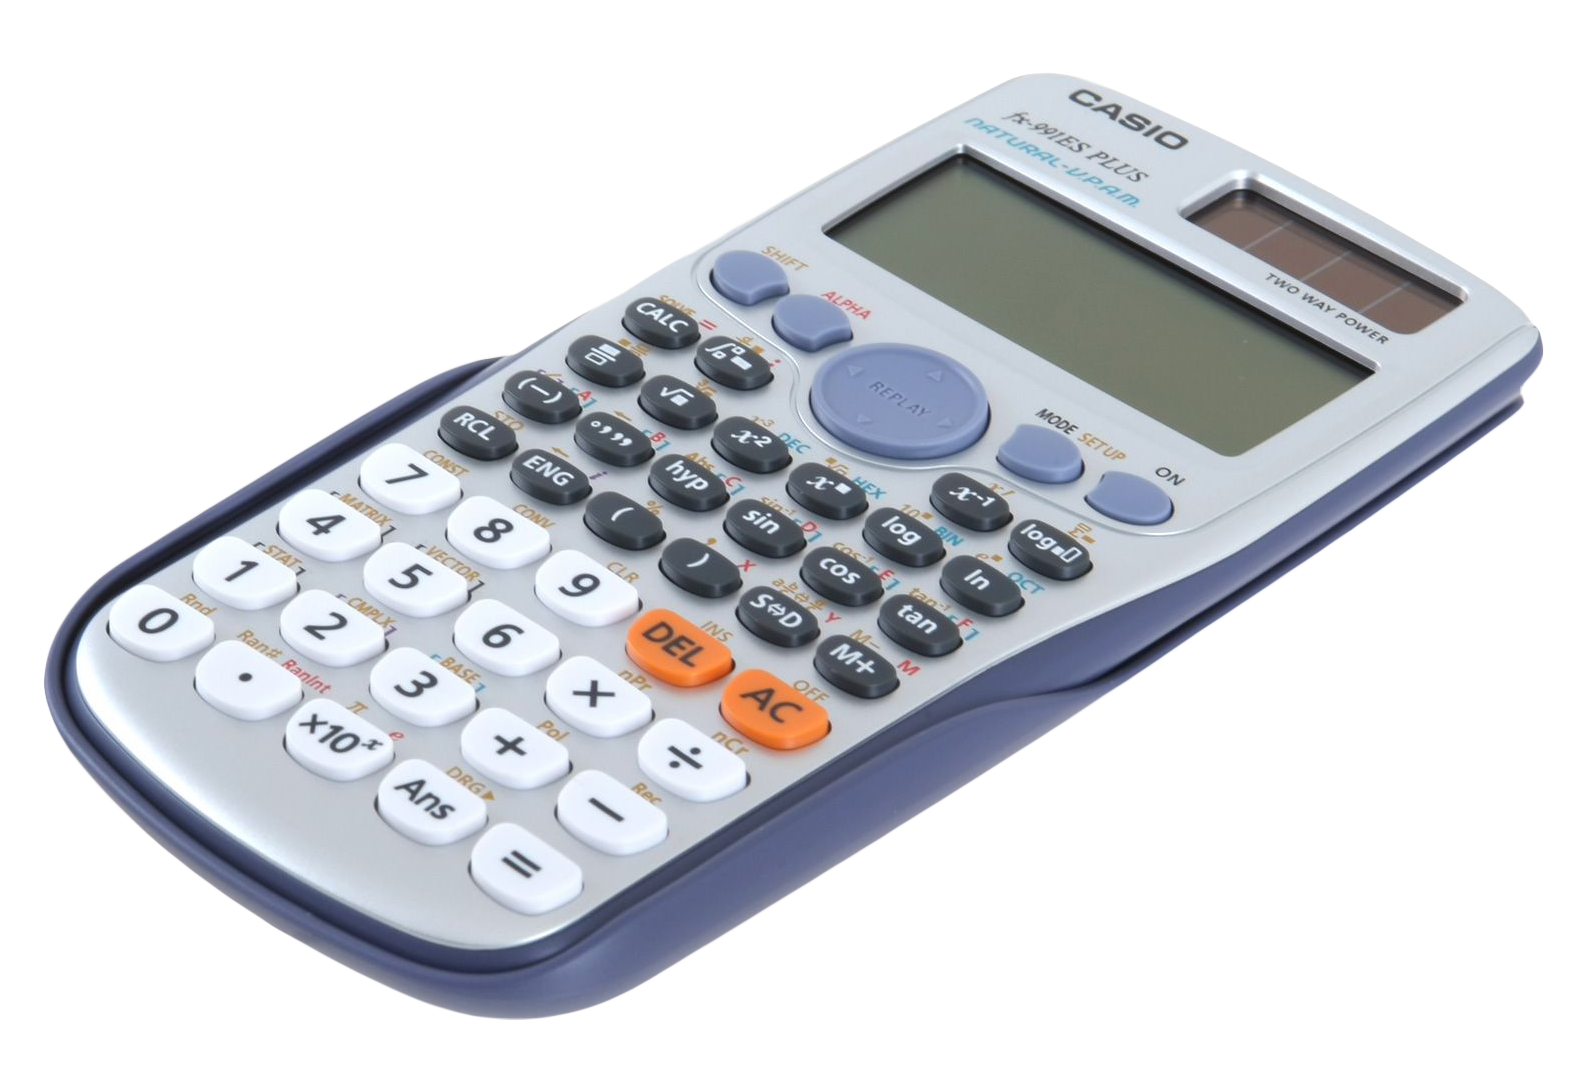 banner royalty free stock Engineering Scientific Calculator PNG Image